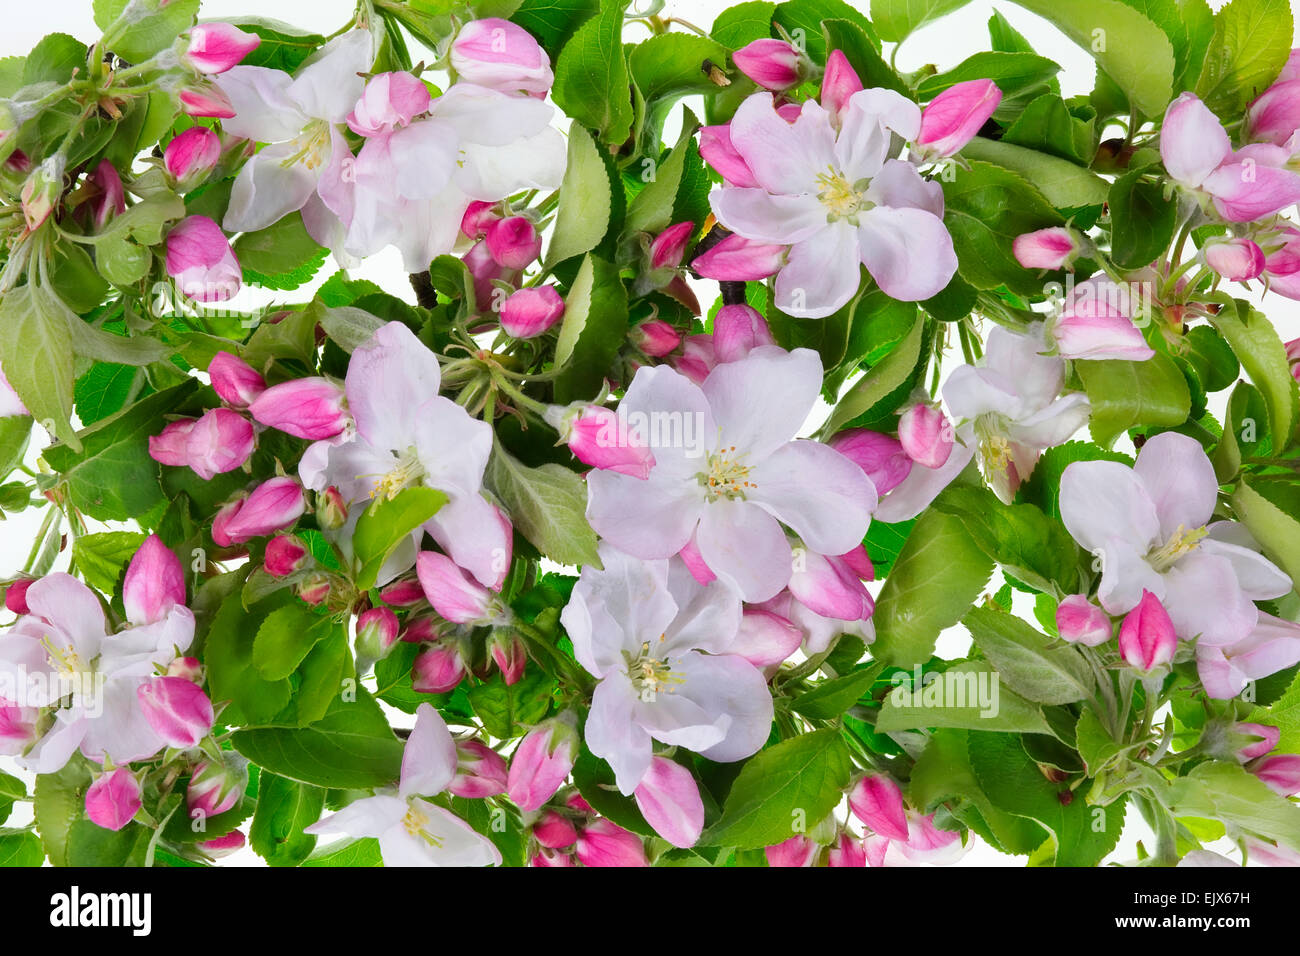 Spring Macro Background From Real Natural Pink Flowers And Gren Leaves